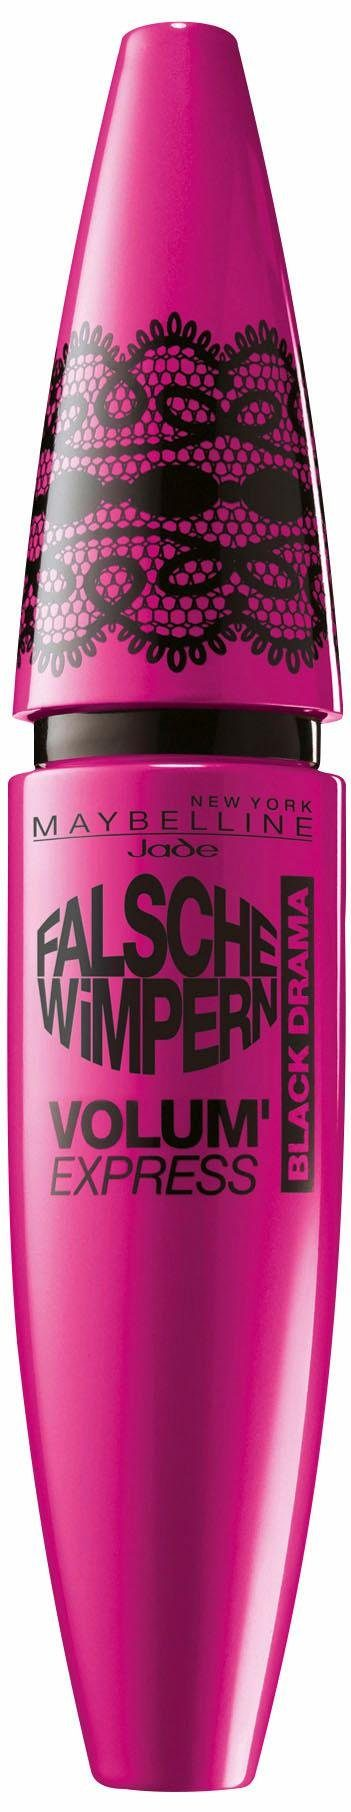 Maybelline New York, »Volum' Express Falsche Wimpern Black Drama«, Mascara